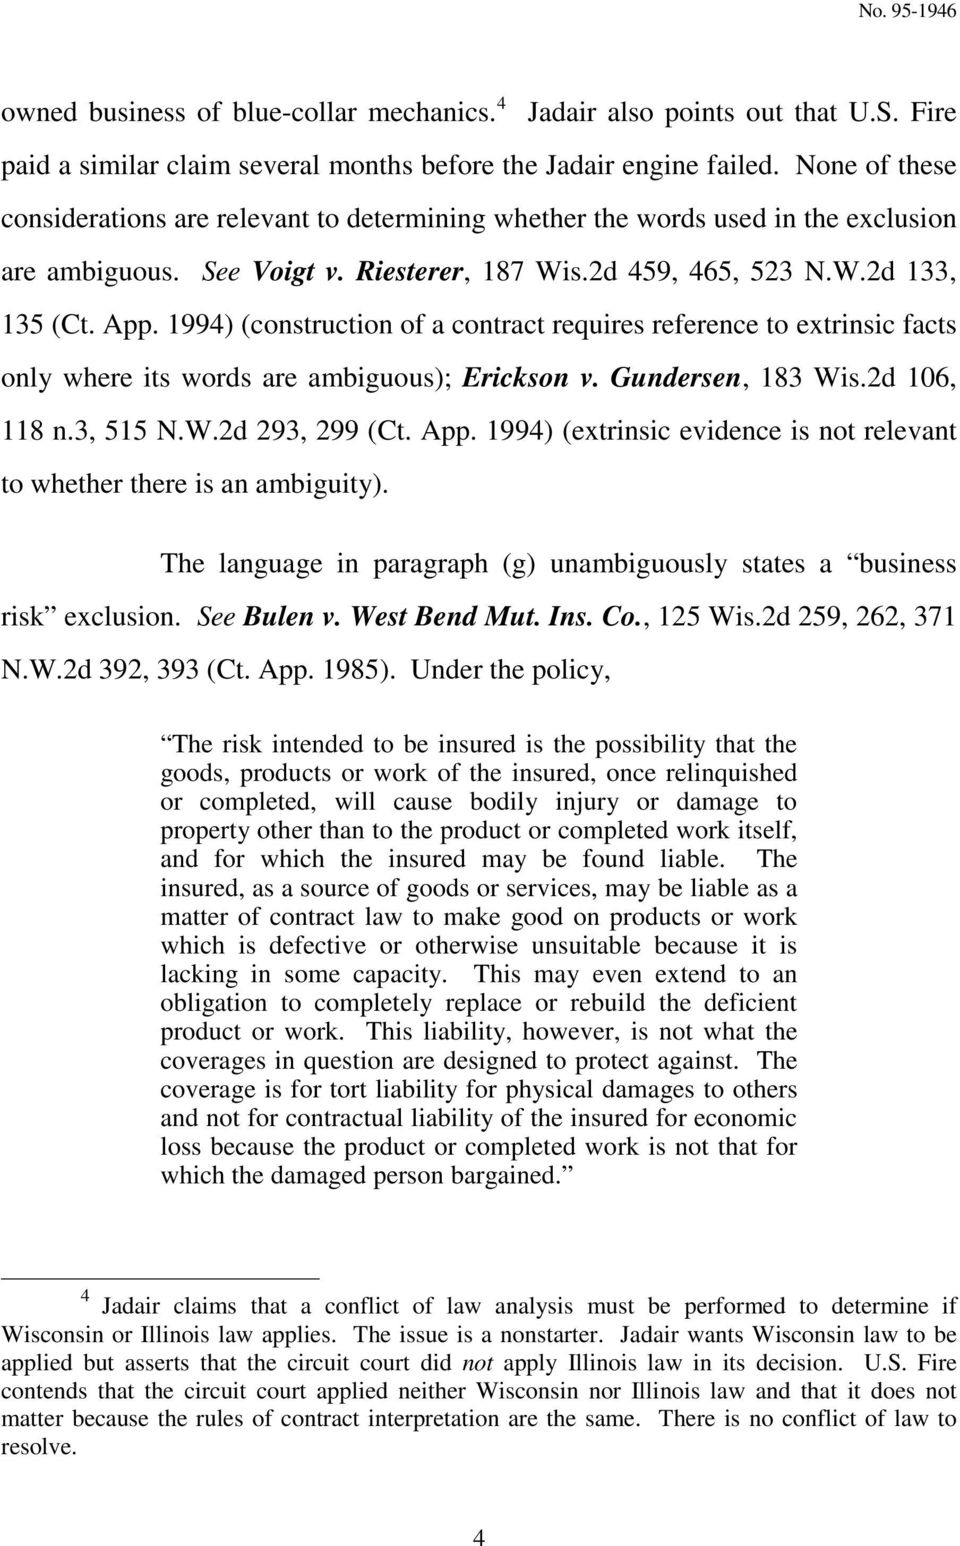 1994) (construction of a contract requires reference to extrinsic facts only where its words are ambiguous); Erickson v. Gundersen, 183 Wis.2d 106, 118 n.3, 515 N.W.2d 293, 299 (Ct. App.